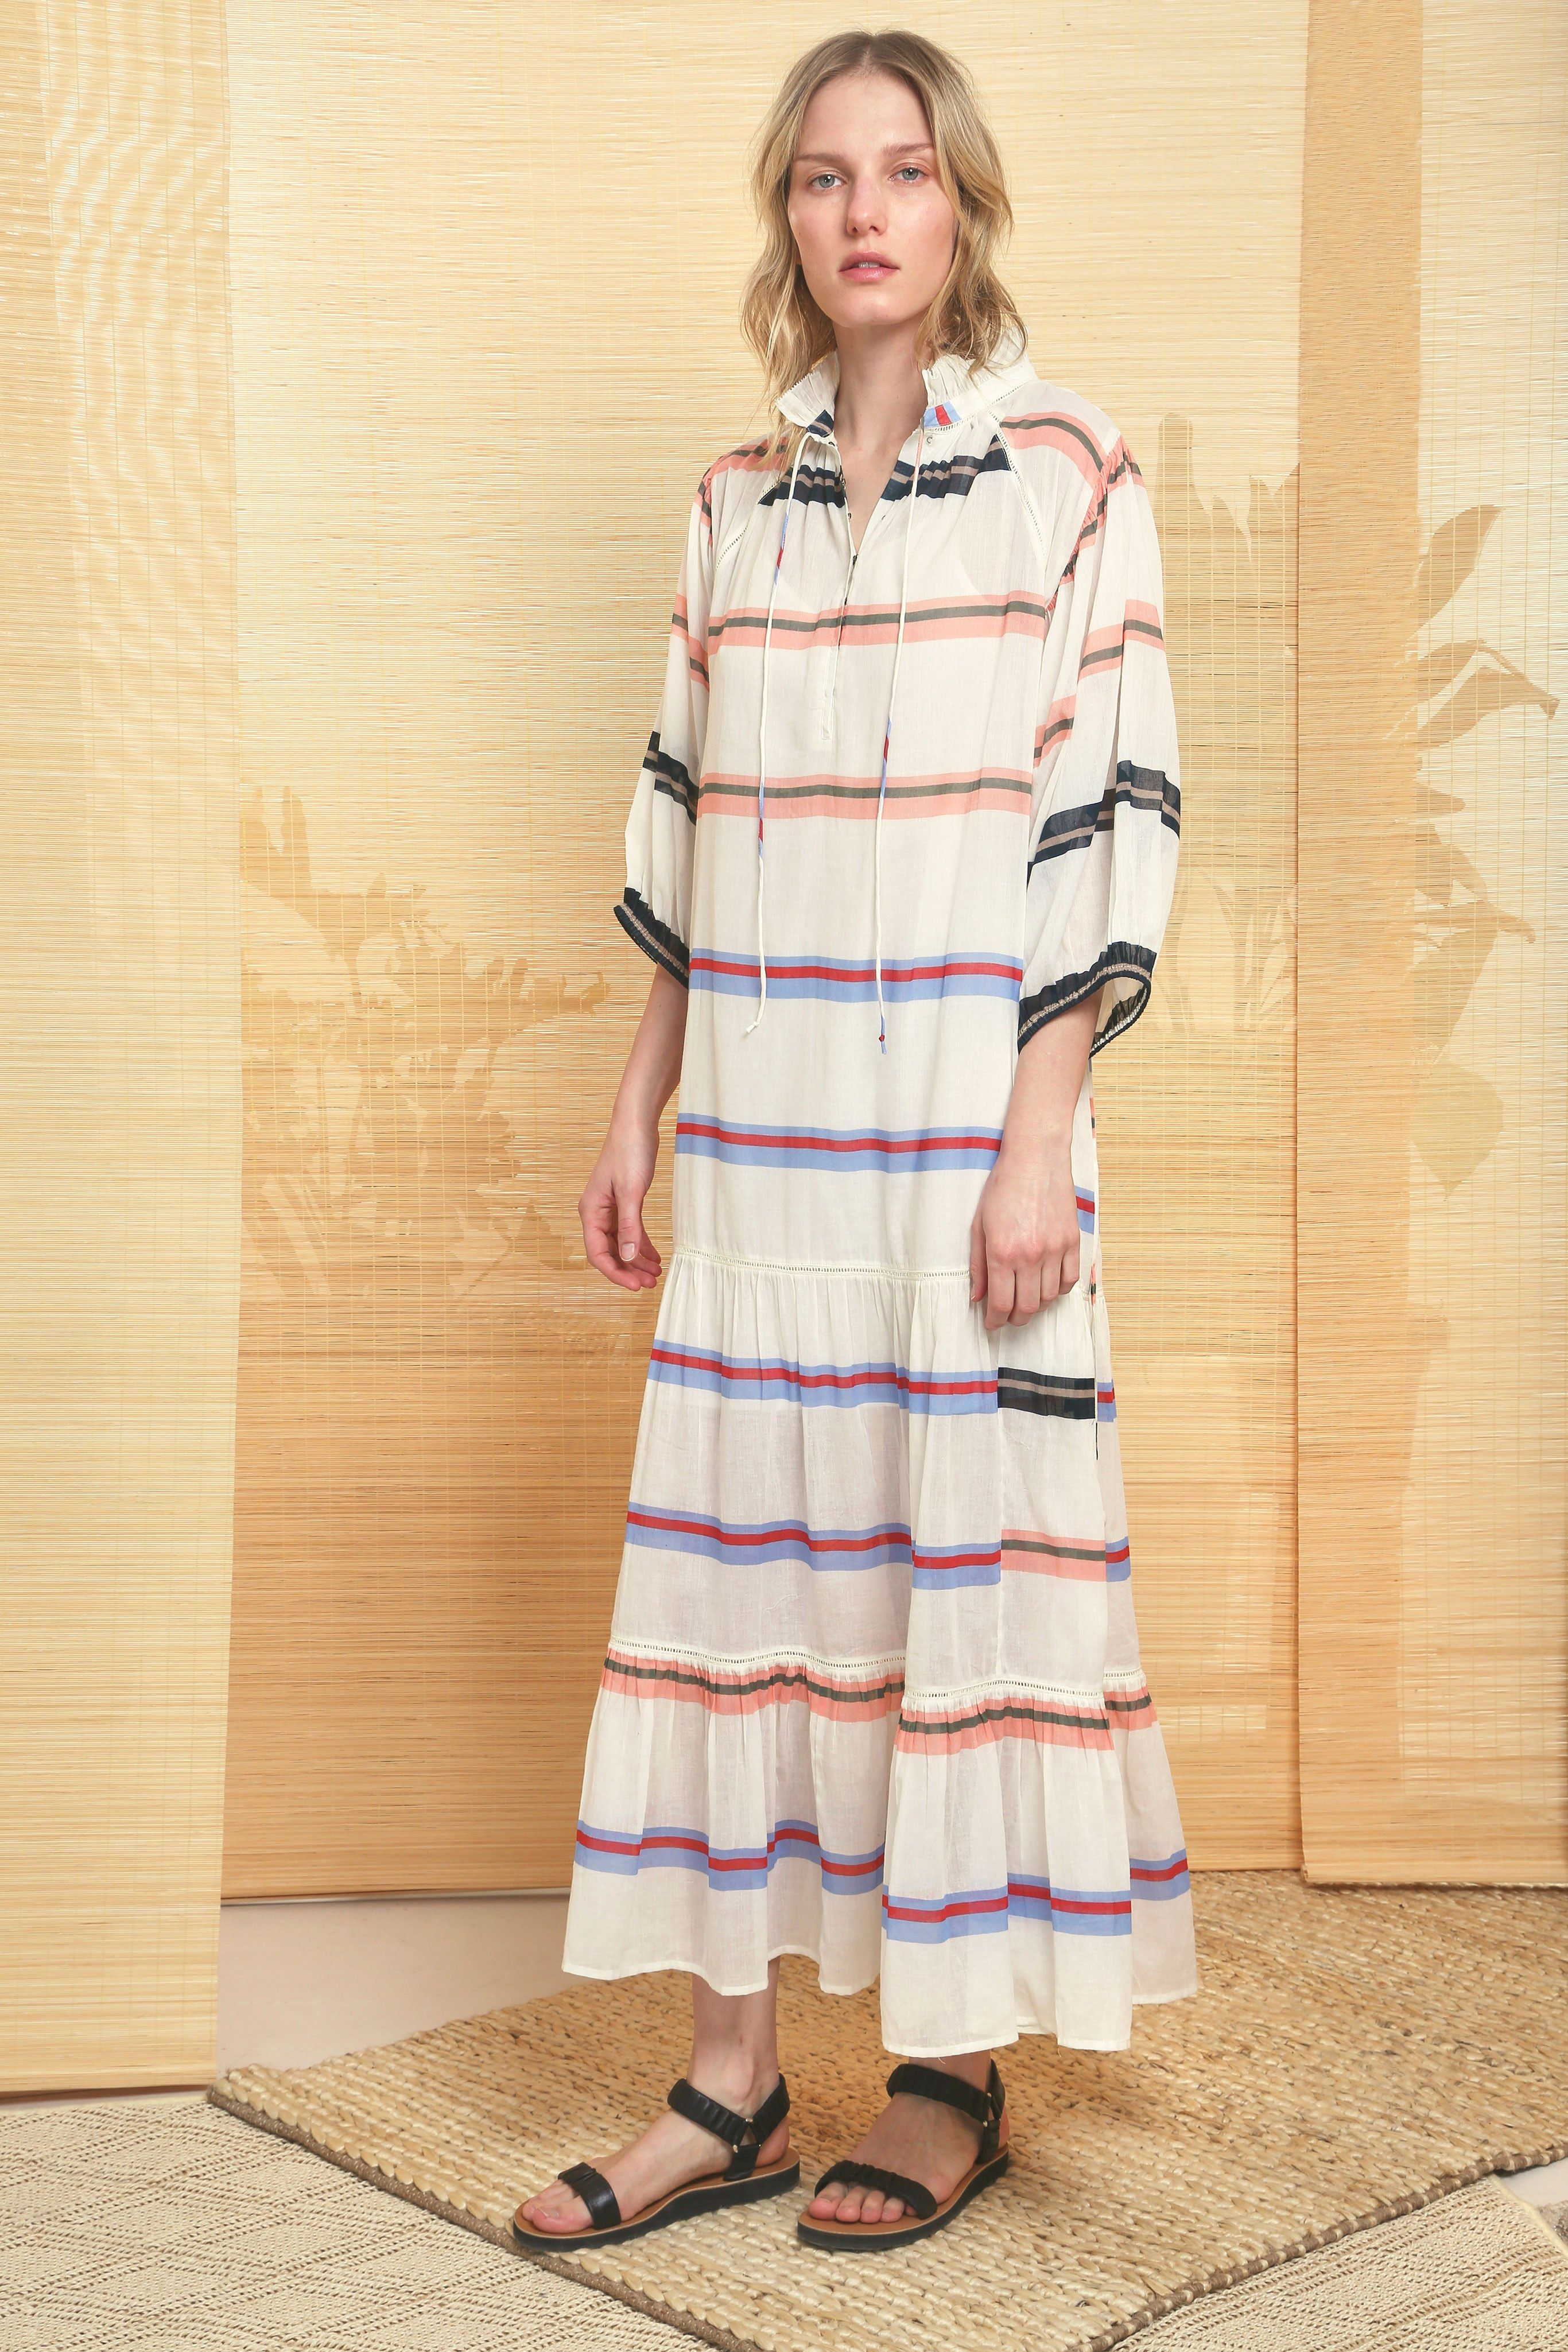 THIS SEASON'S DREAM DRESS FOR EASYGOING VACATION TRANSITIONS – FROM BEACH TO HITTING THE TOWN FOR COCKTAILS OR SUNSET DINNERS. CUT FROM A LIGHTWEIGHT, BREATHABLE COTTON PRINTED WITH BOLD STRIPES, DELICATE RUFFLE DETAILING AROUND THE COLLAR, HOOK AND EYE CLOSURE UP THE FRONT, ¾ SLEEVE, AND FULL MAXI SKIRT.